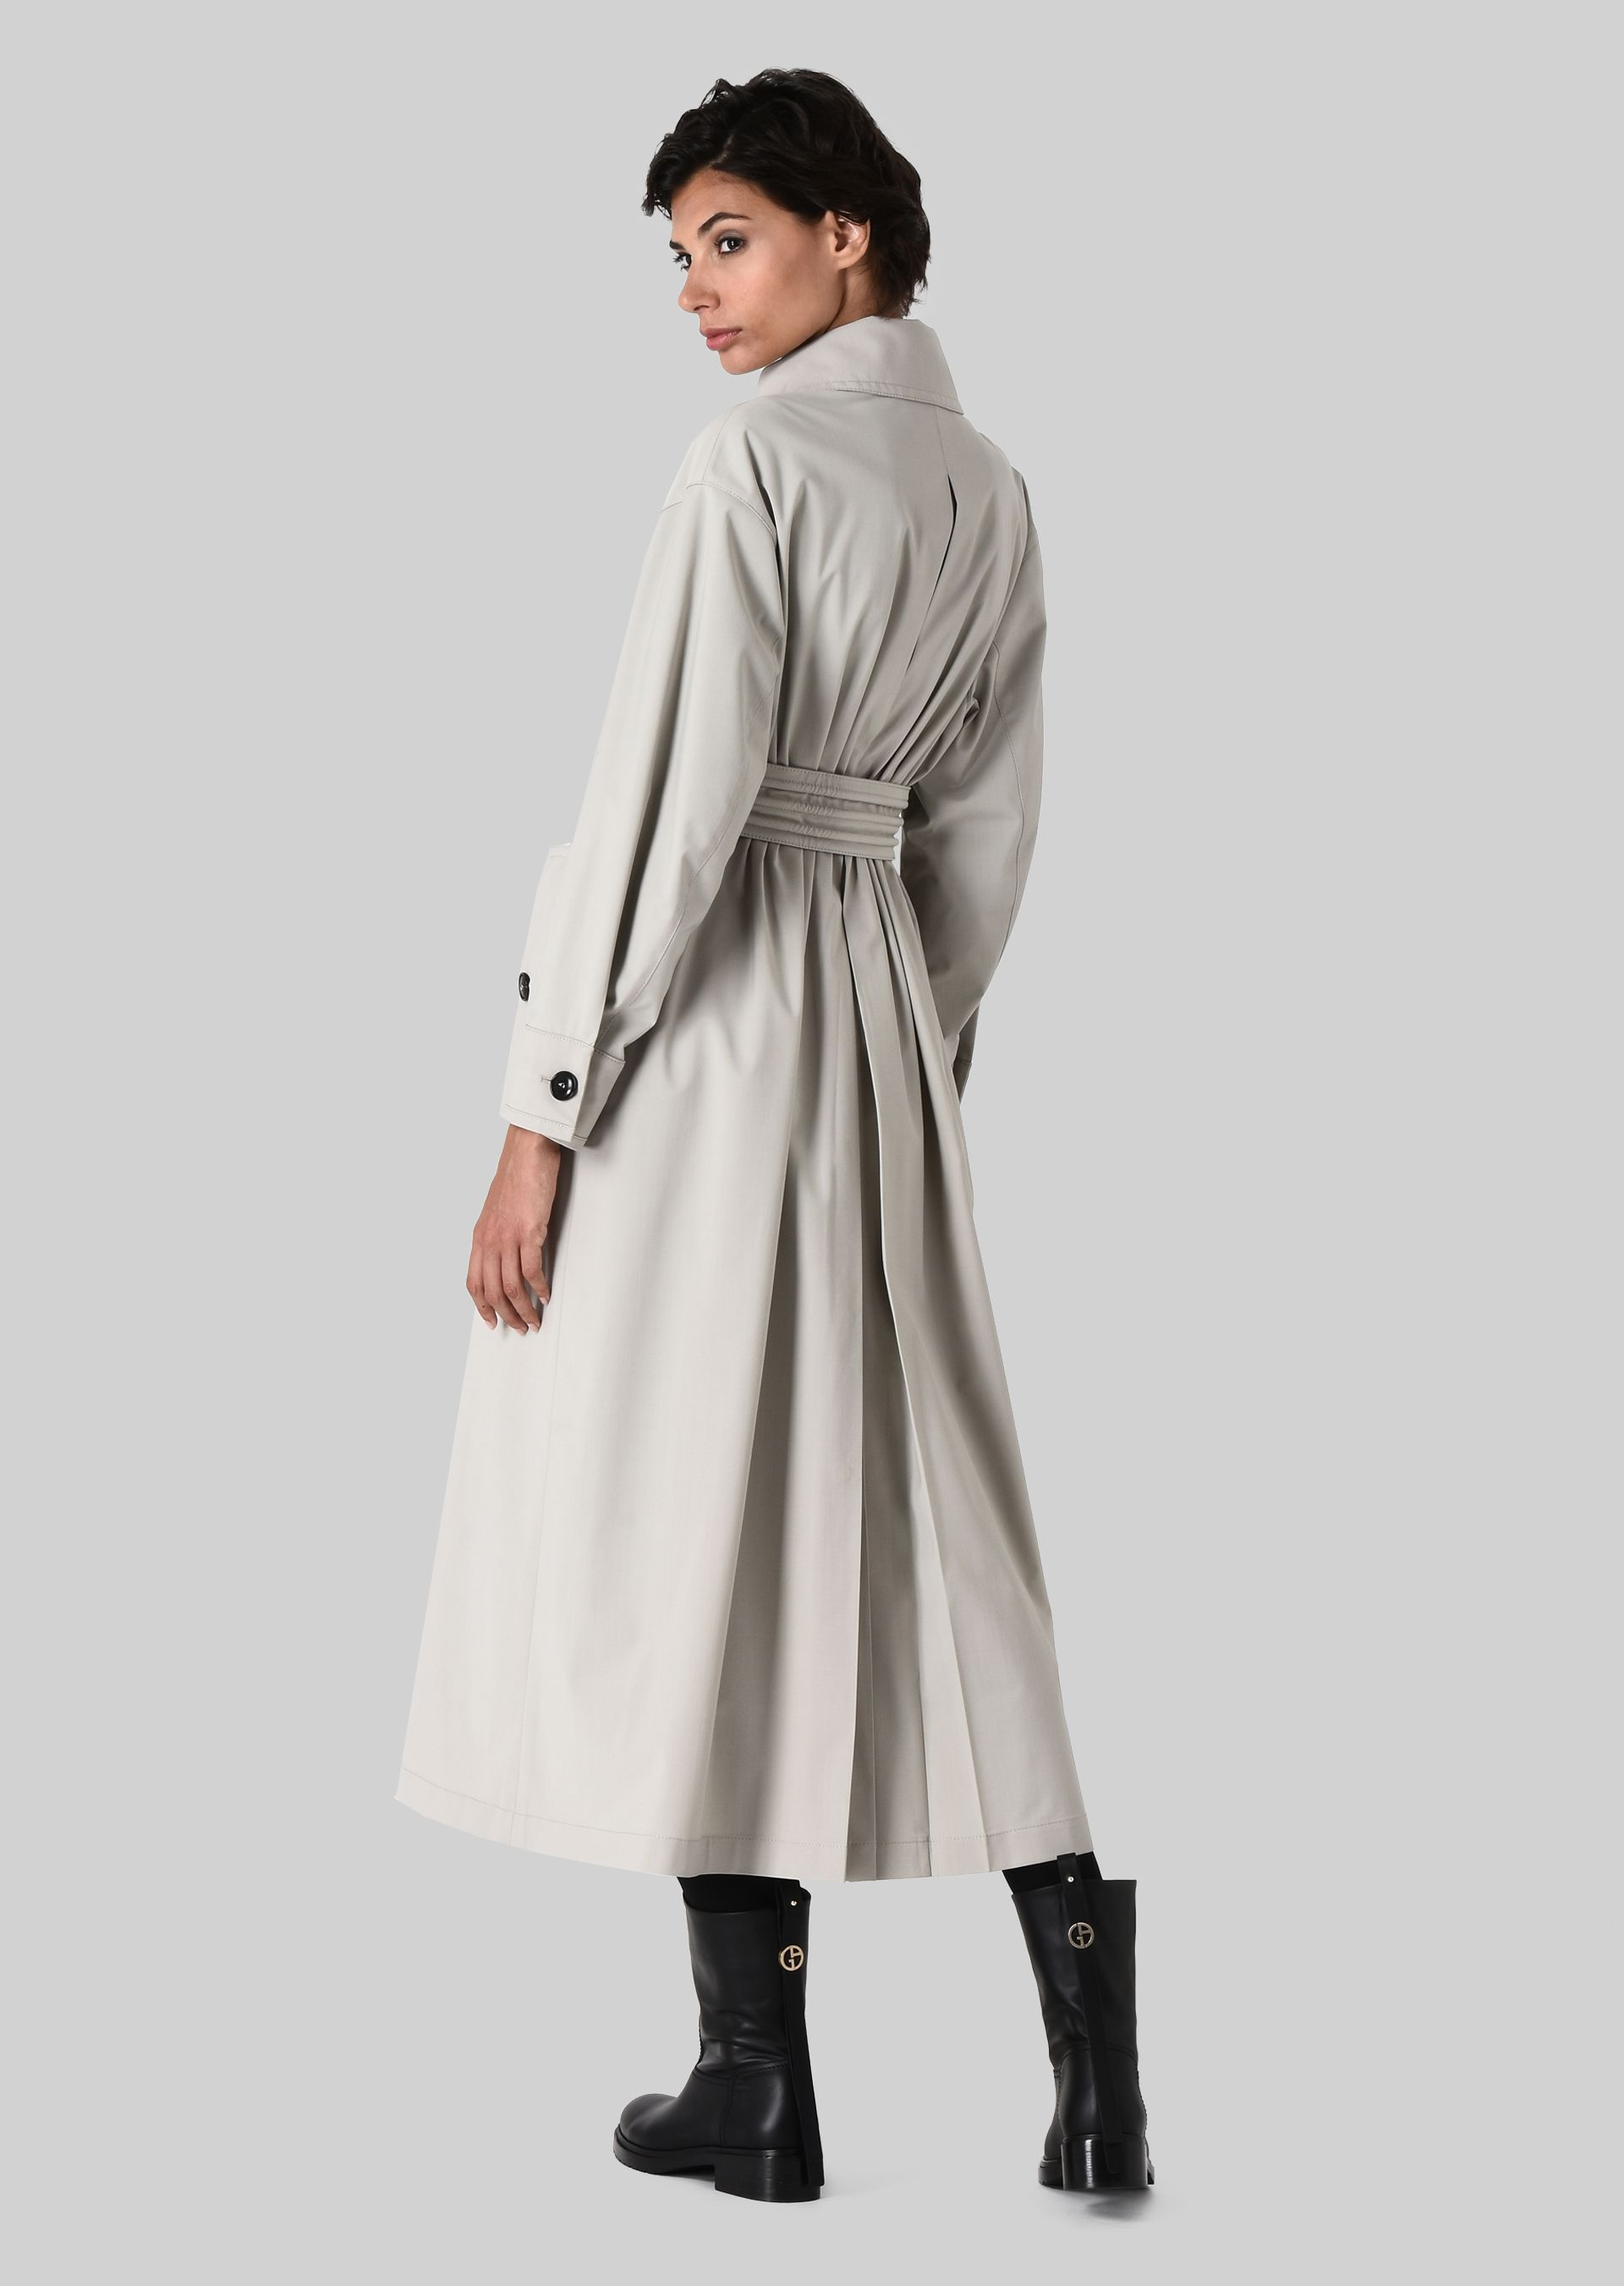 GIORGIO ARMANI DOUBLE-BREASTED TRENCH COAT IN WOOL CLOTH Classic Coat D d